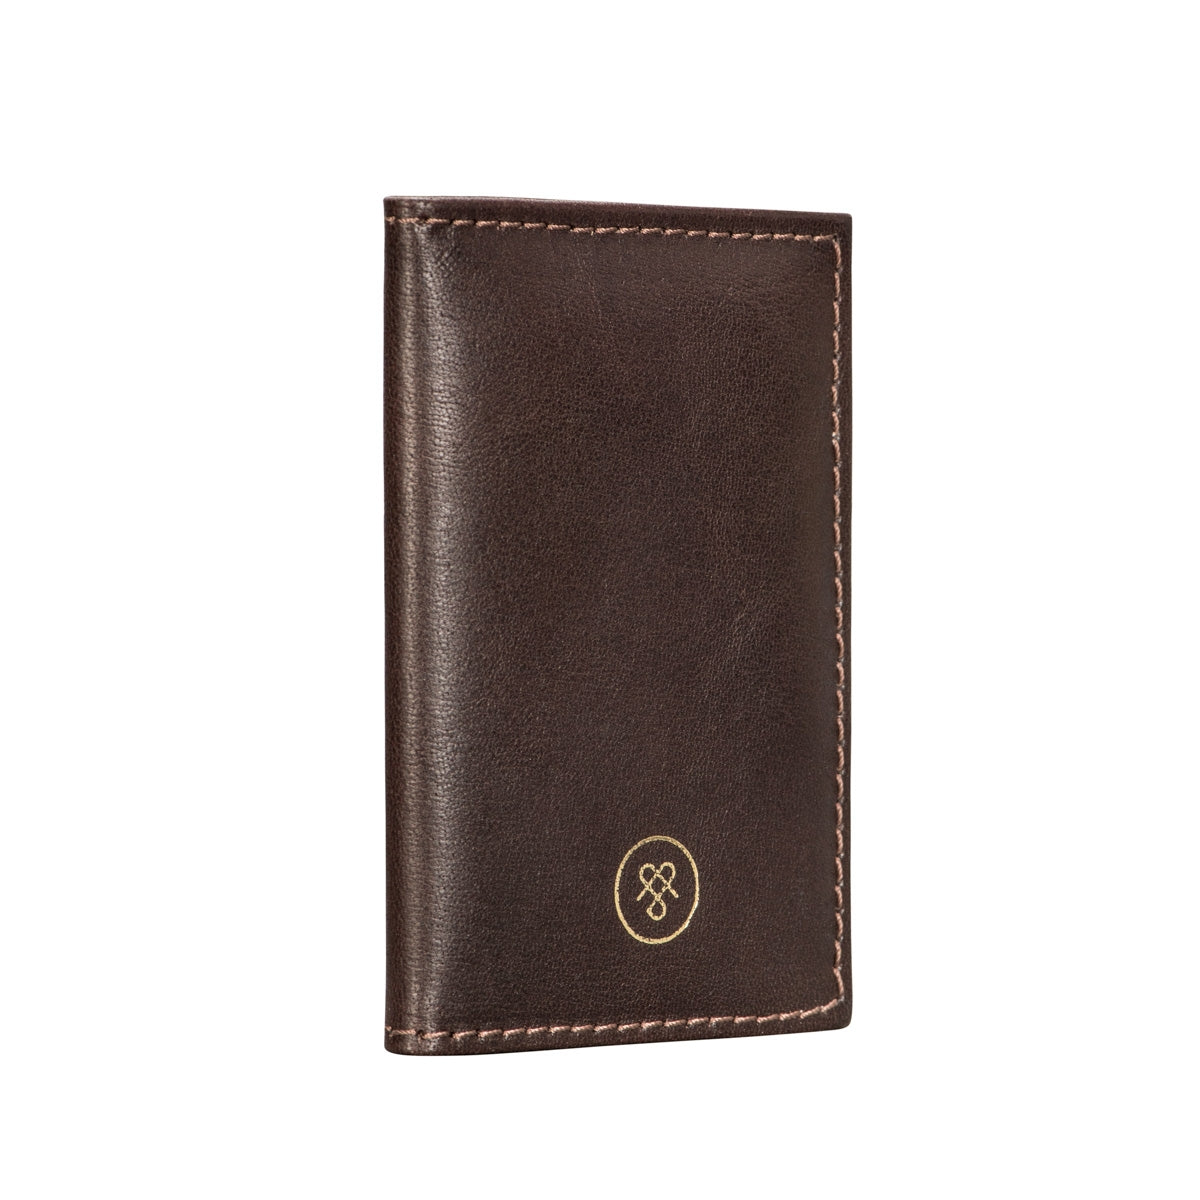 Image 3 of the 'Caldana' Dark Chocolate Mini Pocket Veg-Tanned Leather Address Book